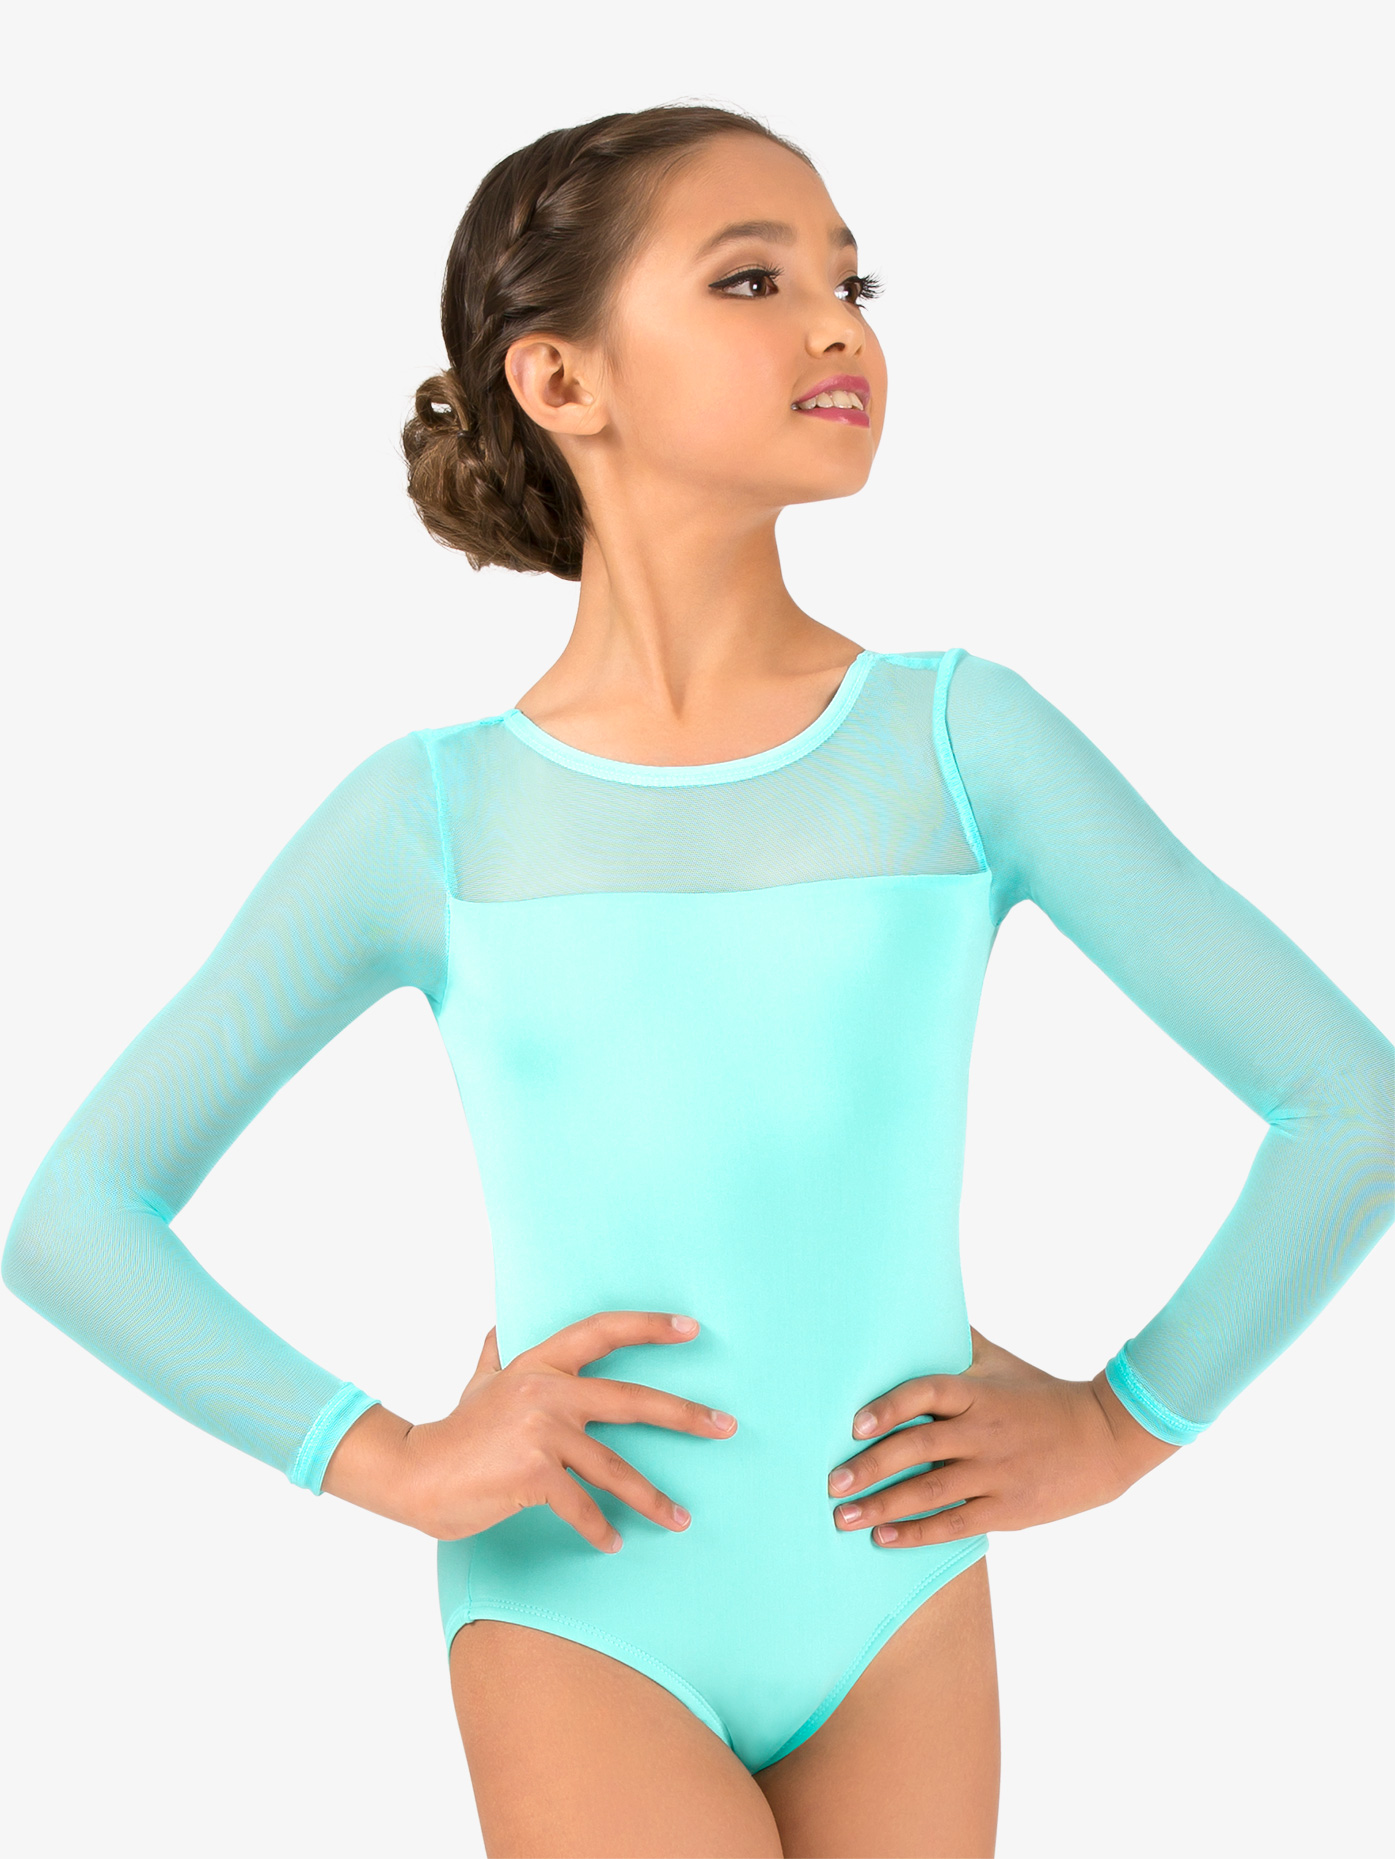 Natalie Girls Mesh Long Sleeve Leotard N9006C